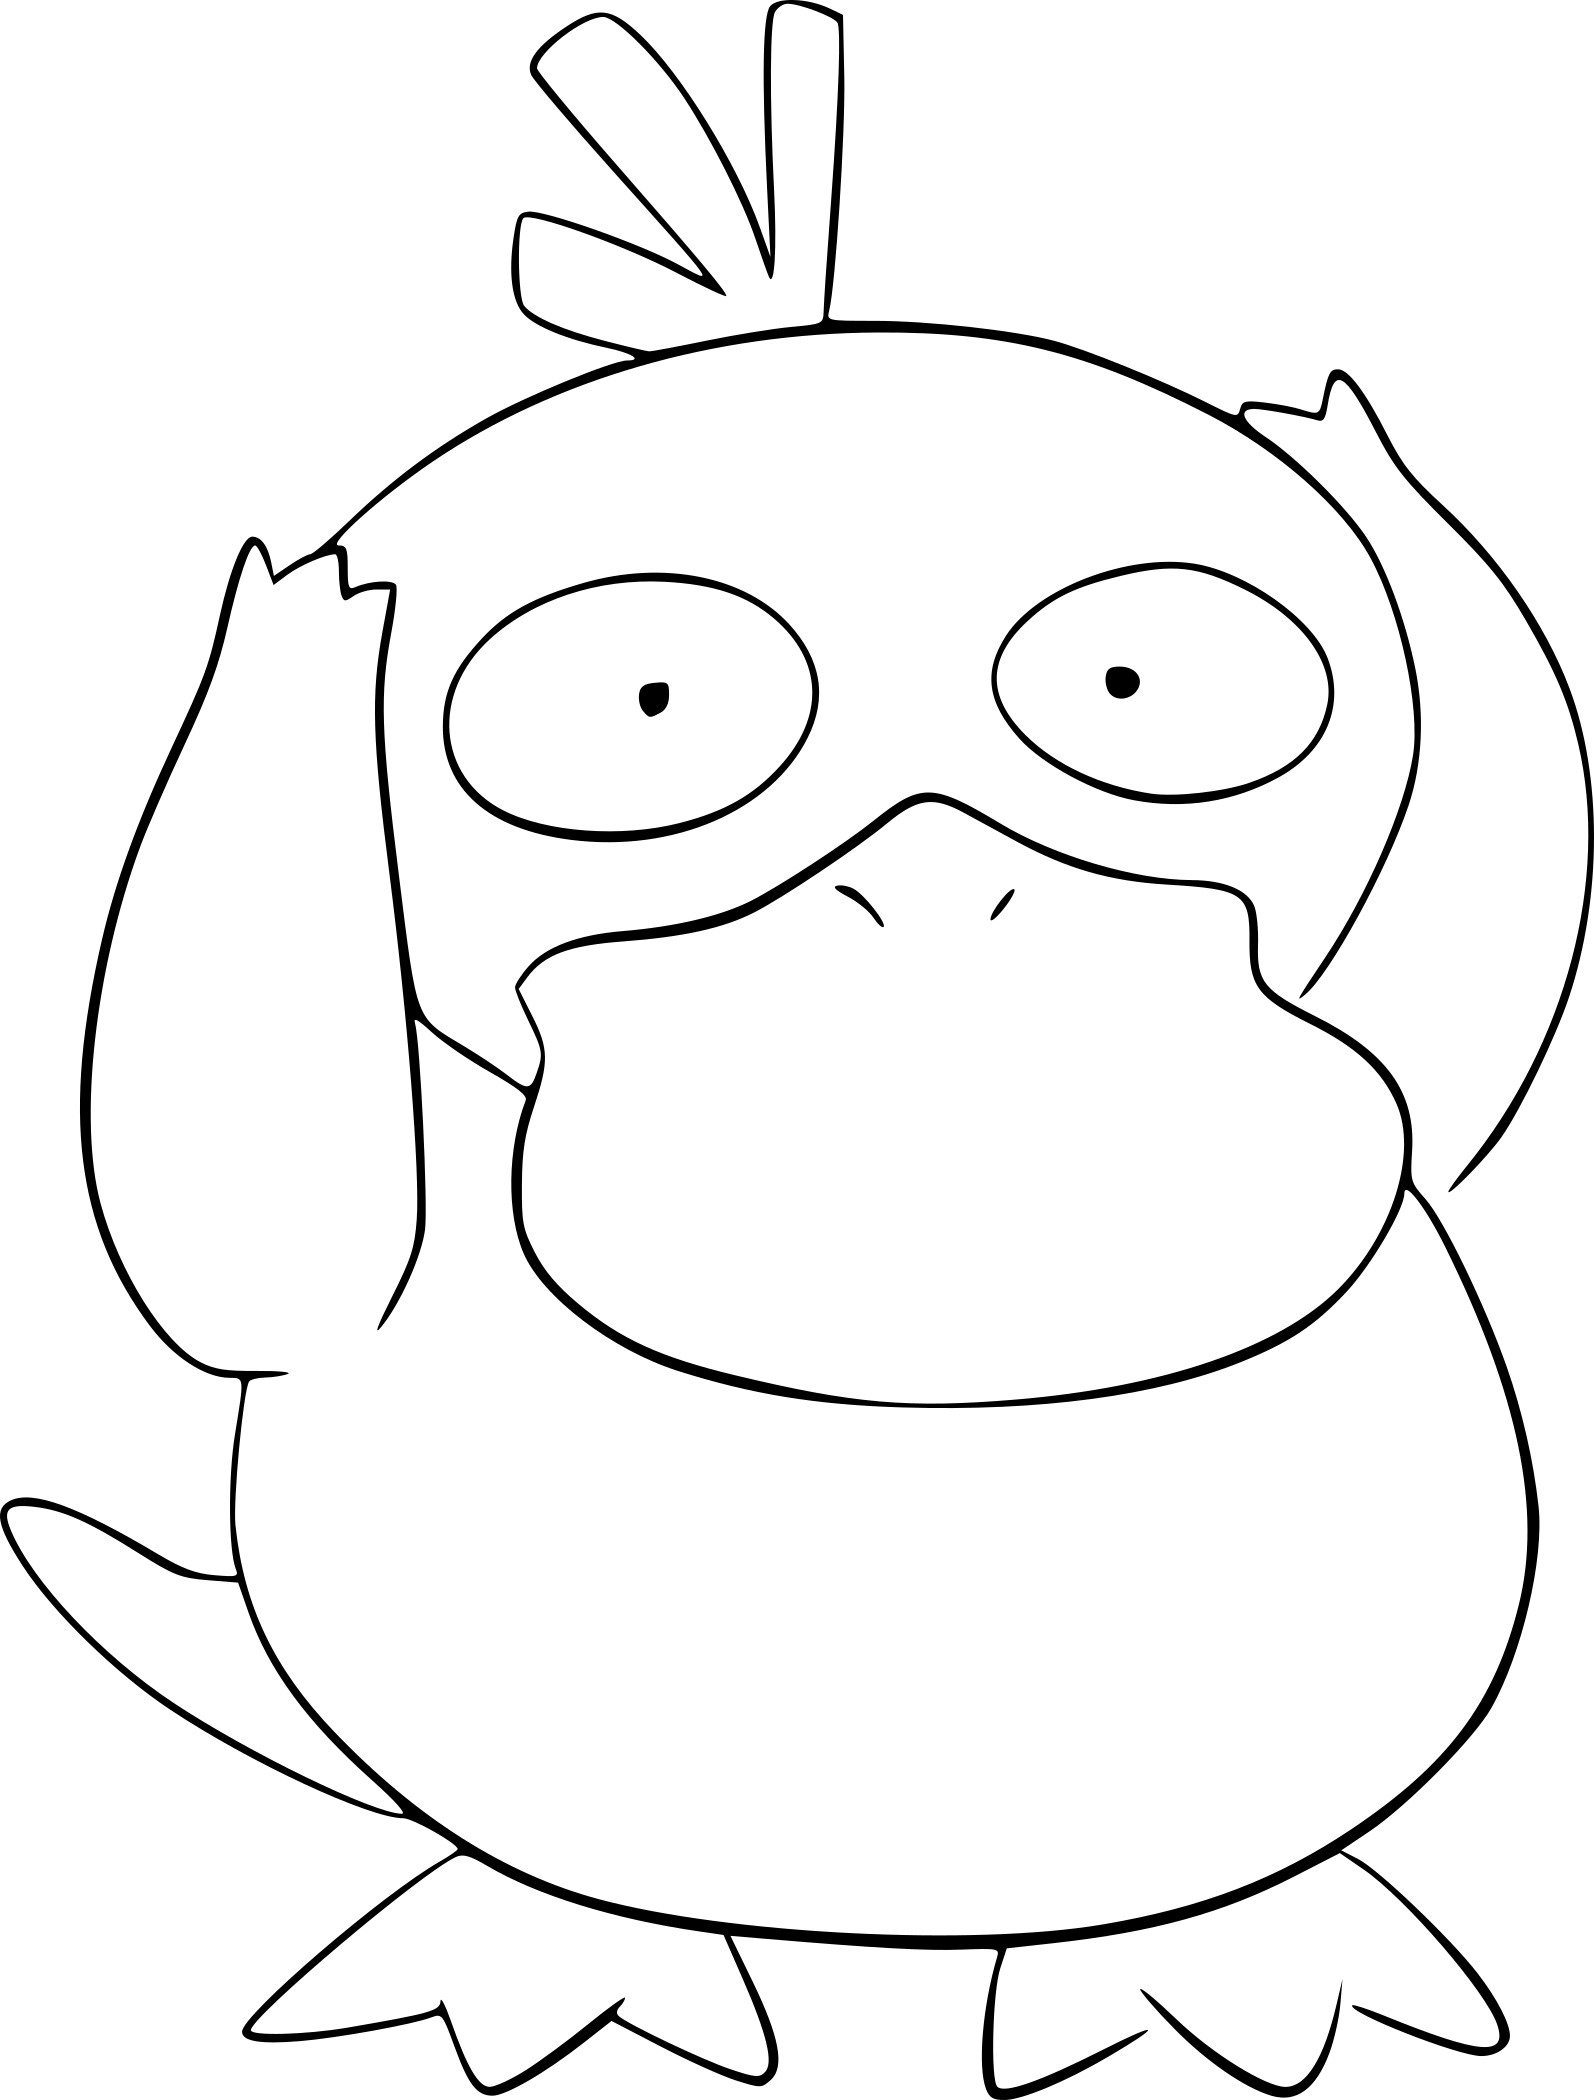 Coloriage psykokwak pokemon imprimer - Imprimer coloriages ...